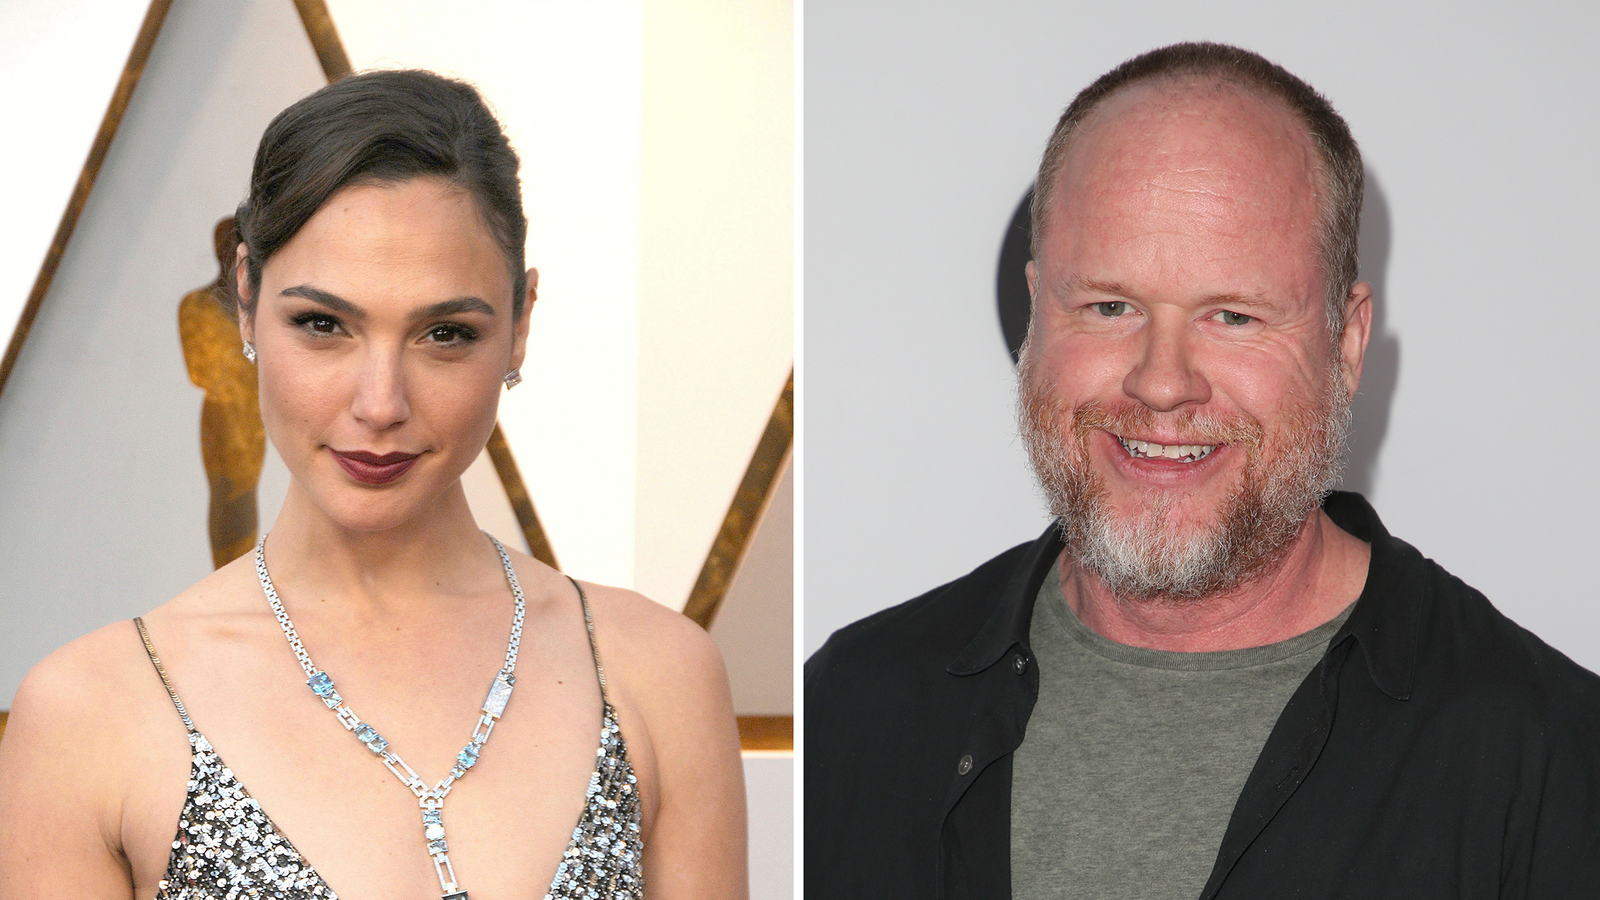 Gal Gadot accuses filmmaker Joss Whedon of 'threatening her career' on Justice League shoot